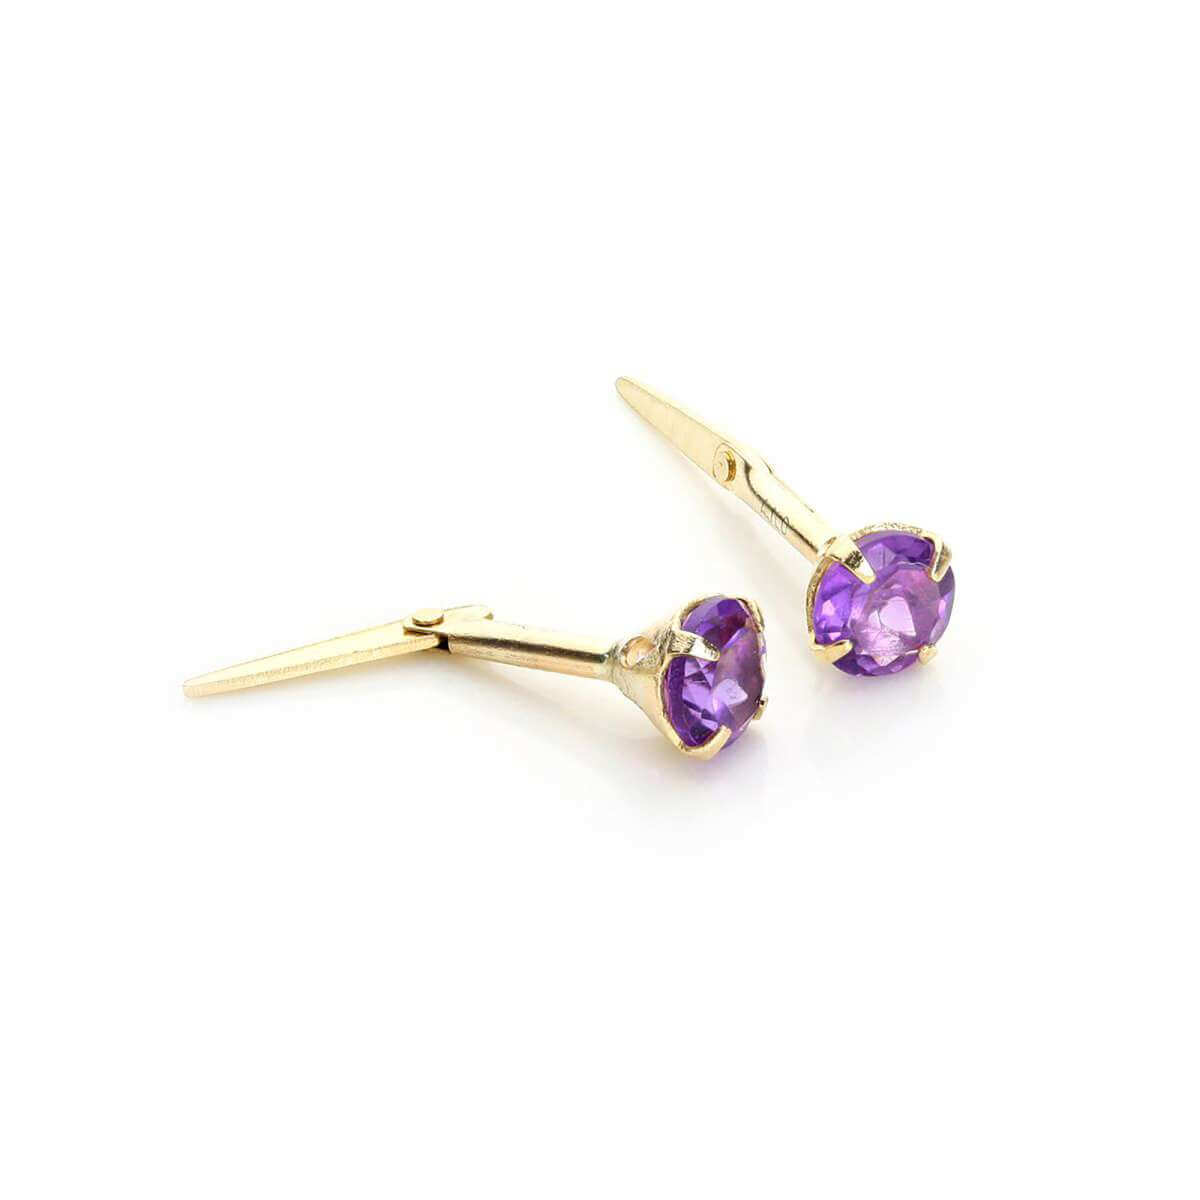 Andralok 9ct Yellow Gold Amethyst 3.5mm Round Stud Earrings